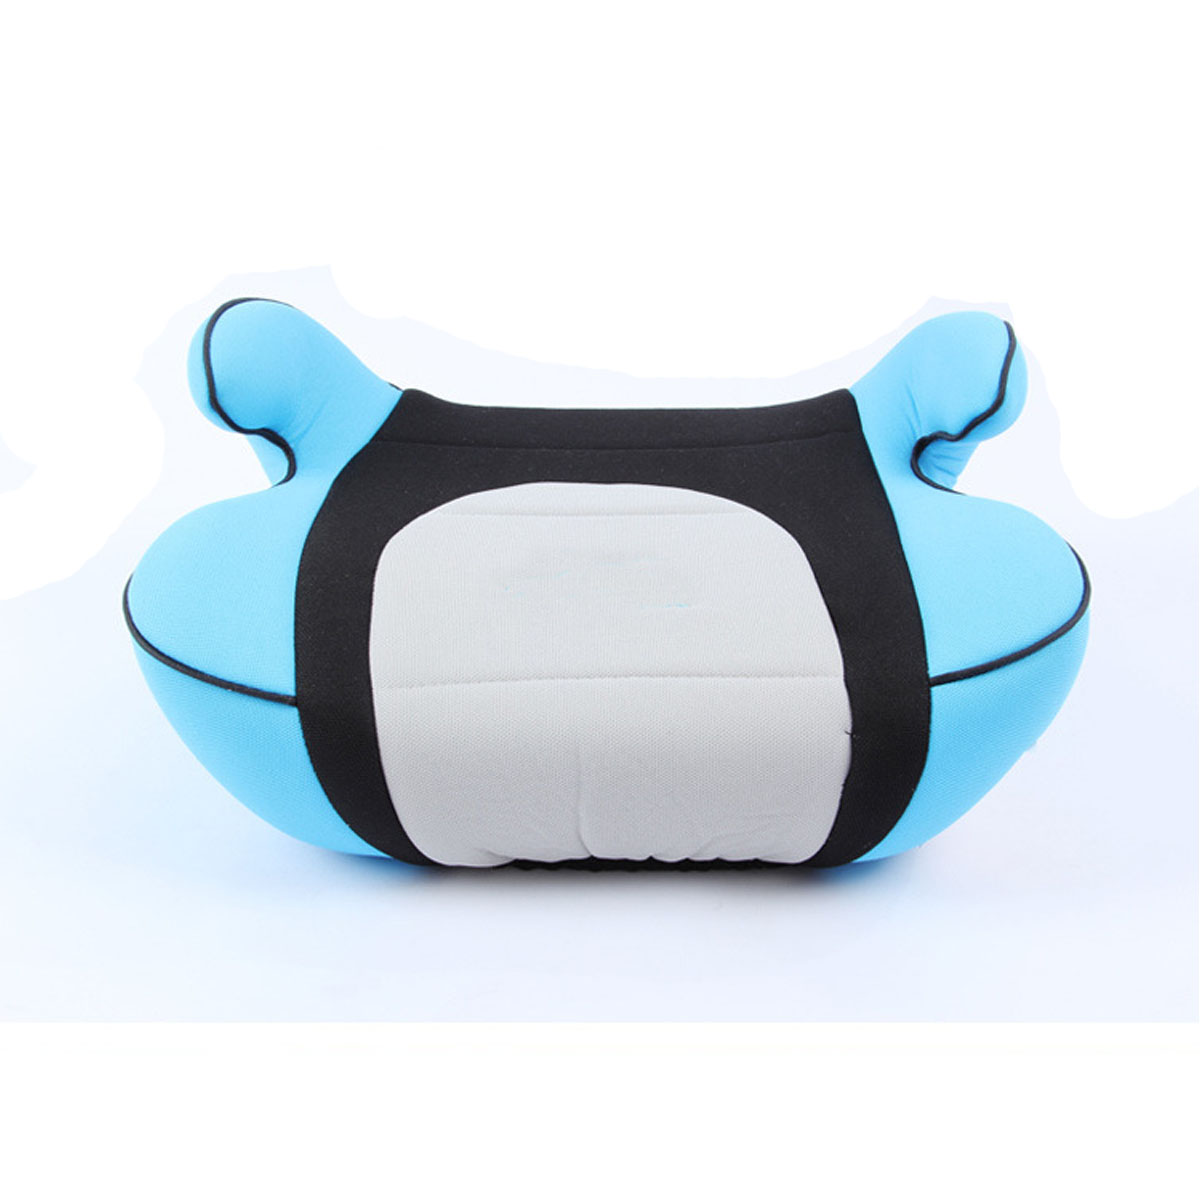 Portable High Quality Children Kids Baby Safety Car Simple Seats Harness Breathable Knitted Cotton Seat 5 Colors 3M to 12Years<br>